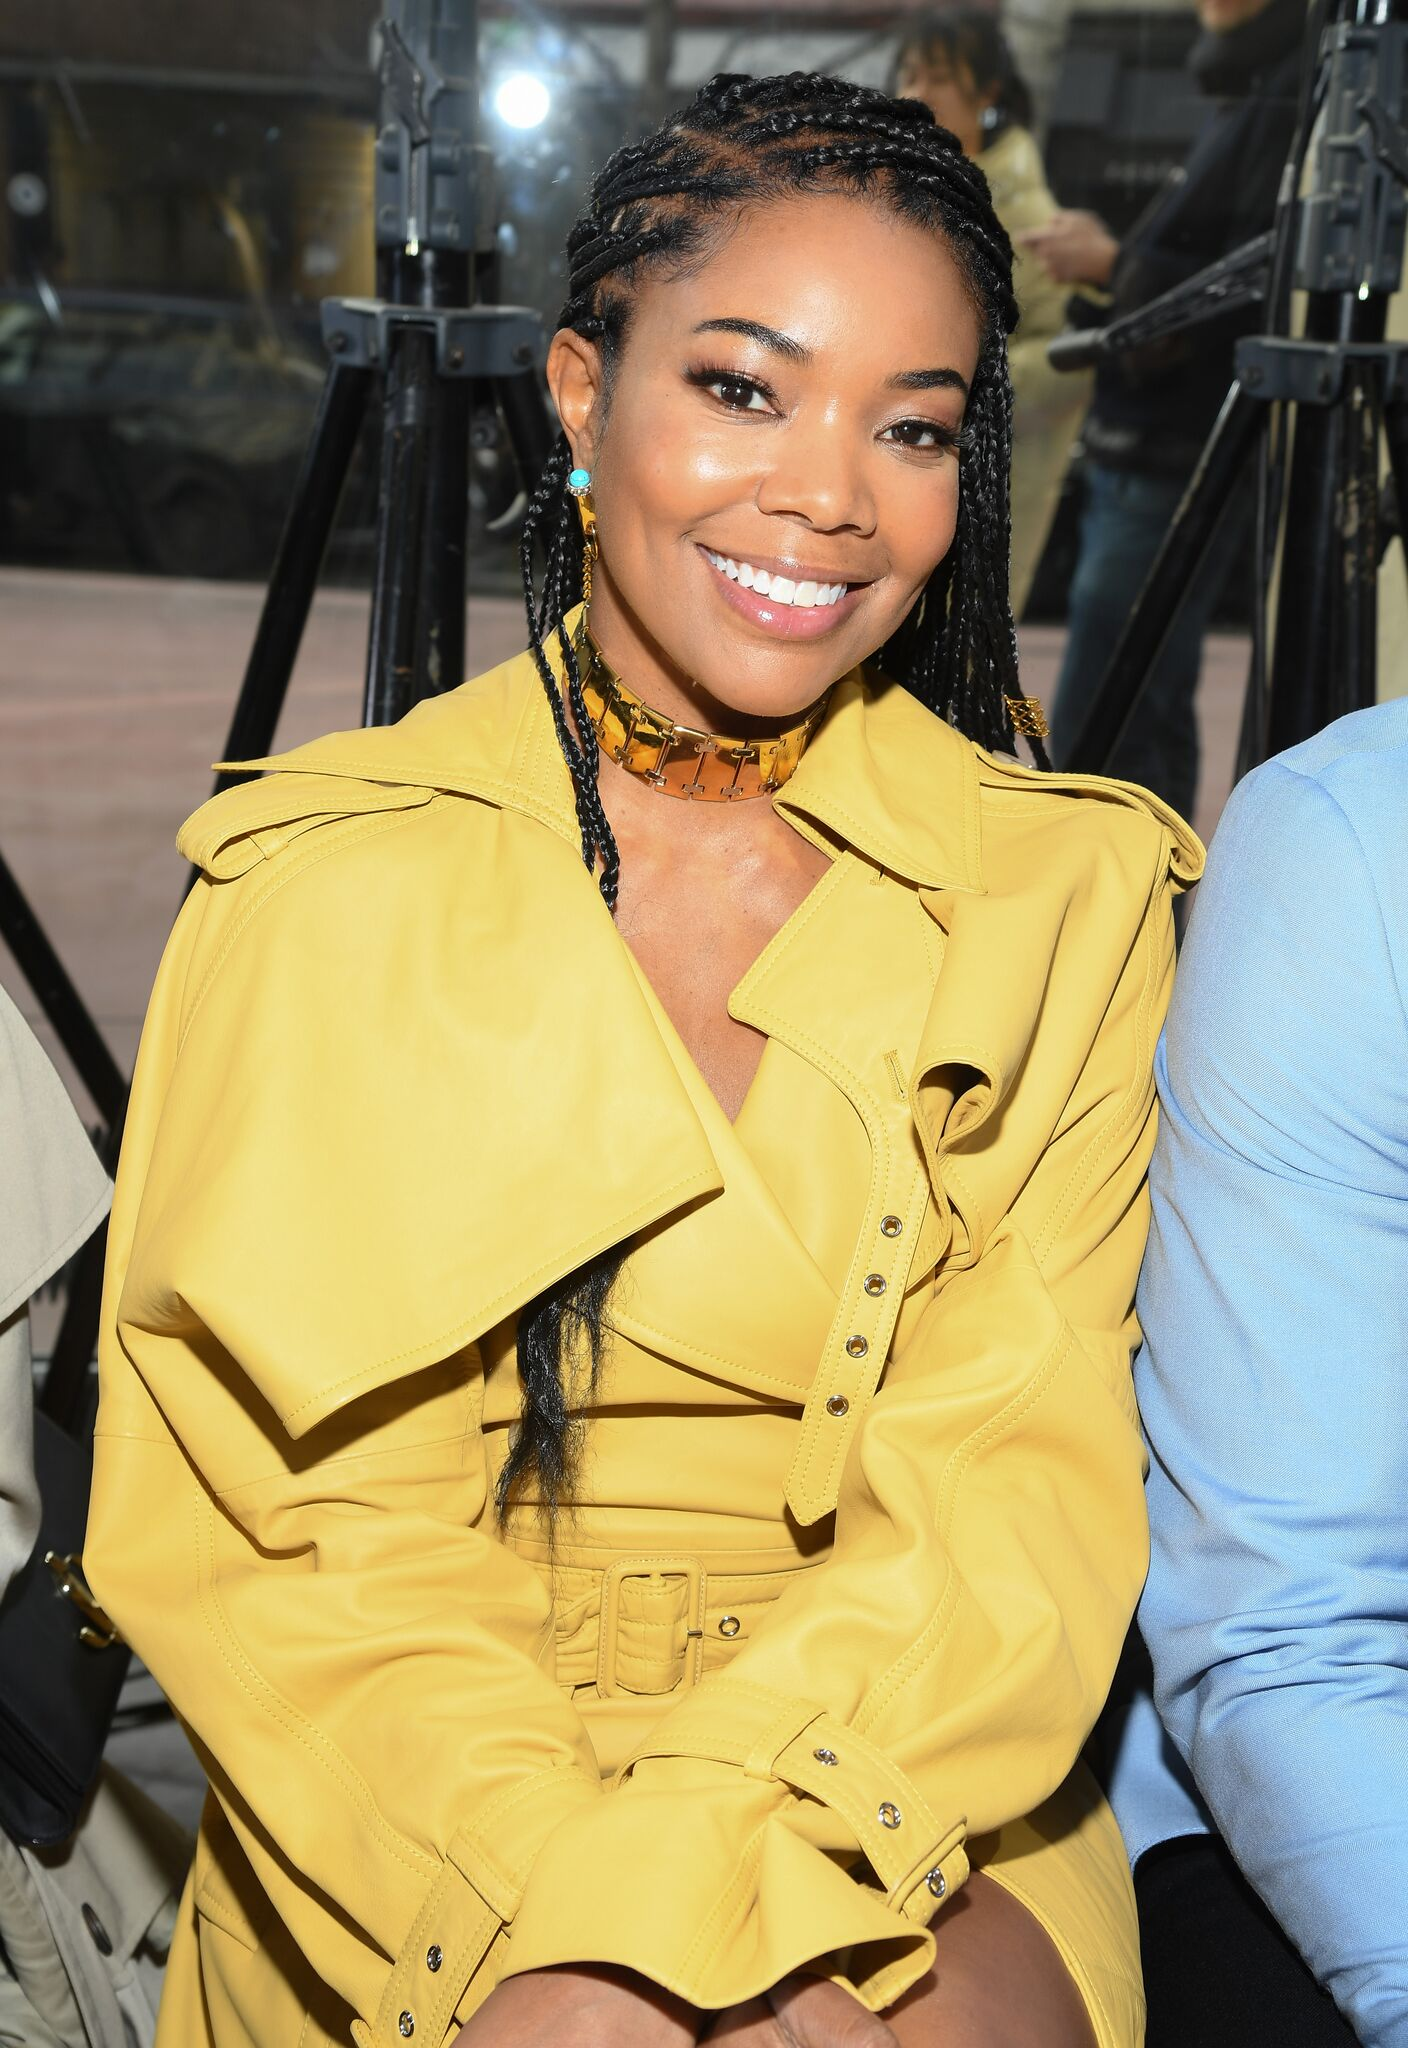 Gabrielle Union attends the Lanvin Menswear Fall/Winter 2020-2021 show as part of Paris Fashion Week on January 19, 2020 | Photo: Getty Images